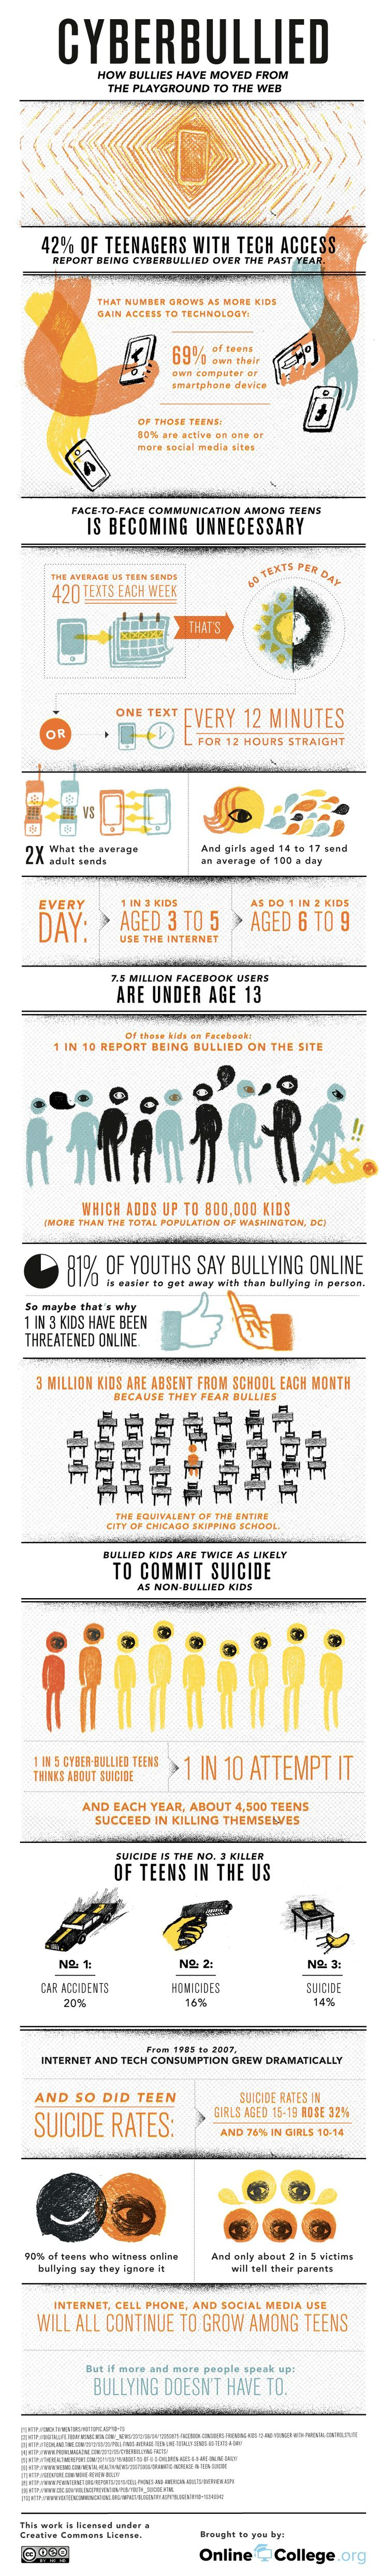 Cyberbullying: Don't Let Bullies Ruin Your Online LifeEd Tech, For Kids, Social Media, Cyberbullying, Graphics, Interesting Facts, Infographic, Cyber Bullying, Cool Stuff